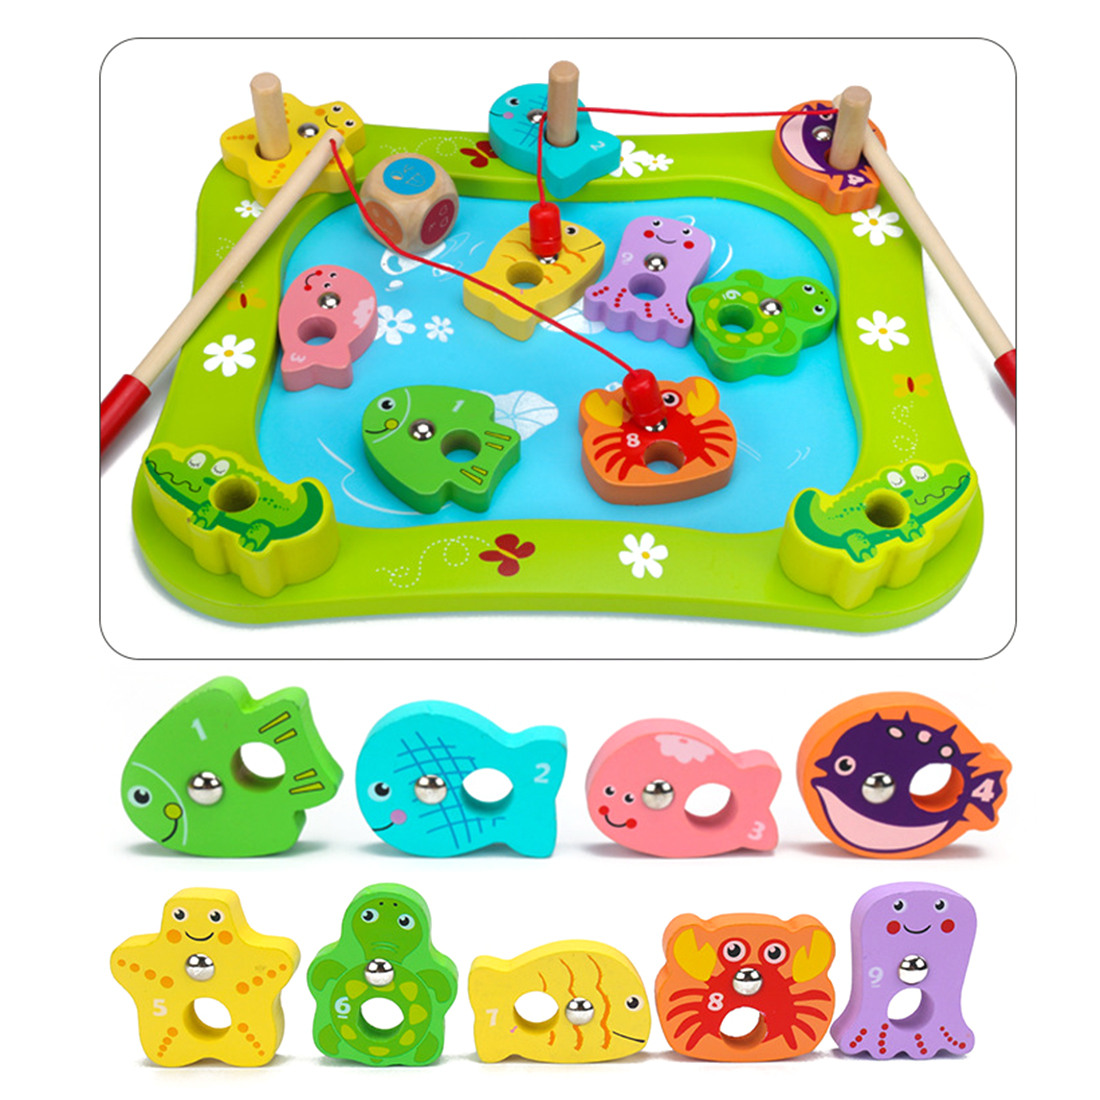 New Hot Children Pretend Play Preschool Toy Fishing Set With Magnetic Pole And Wooden Board Baby Educational Toy